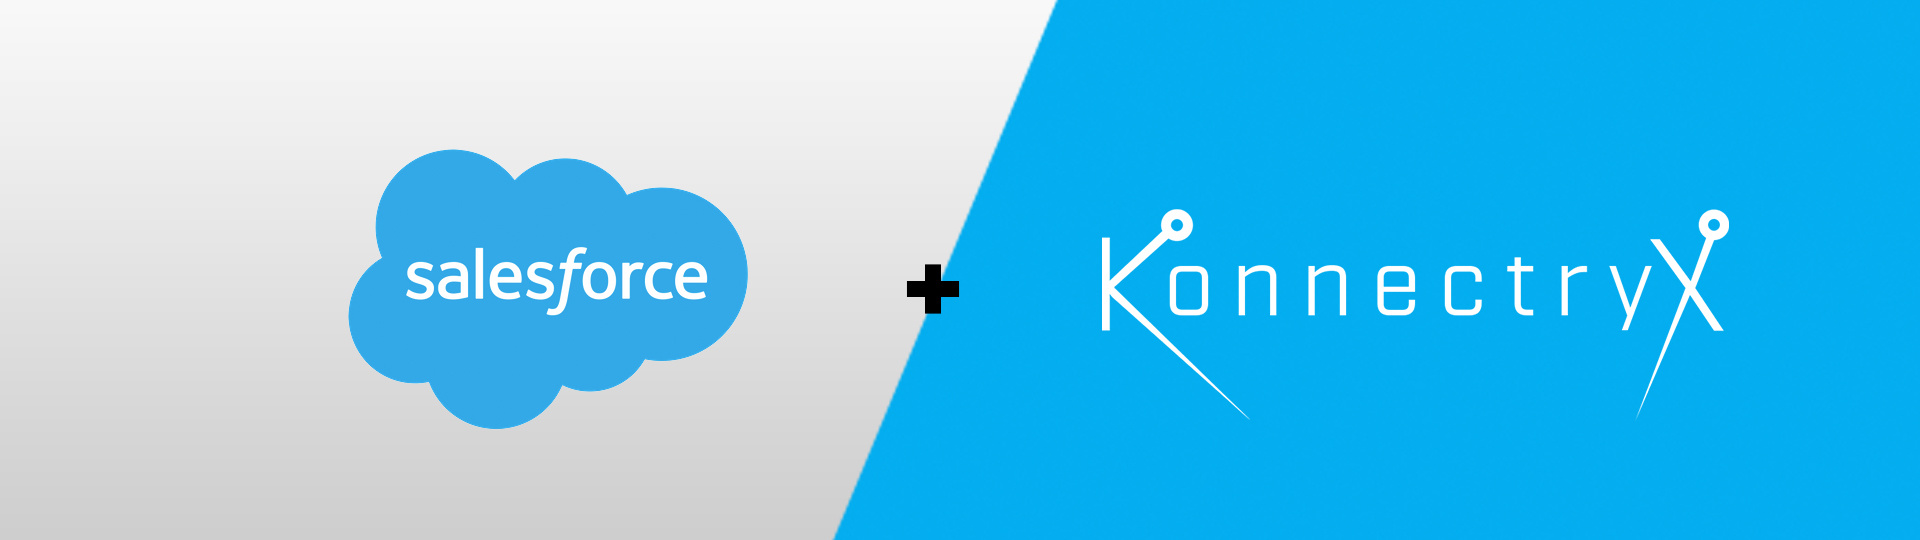 Salesforce + Konnectryx